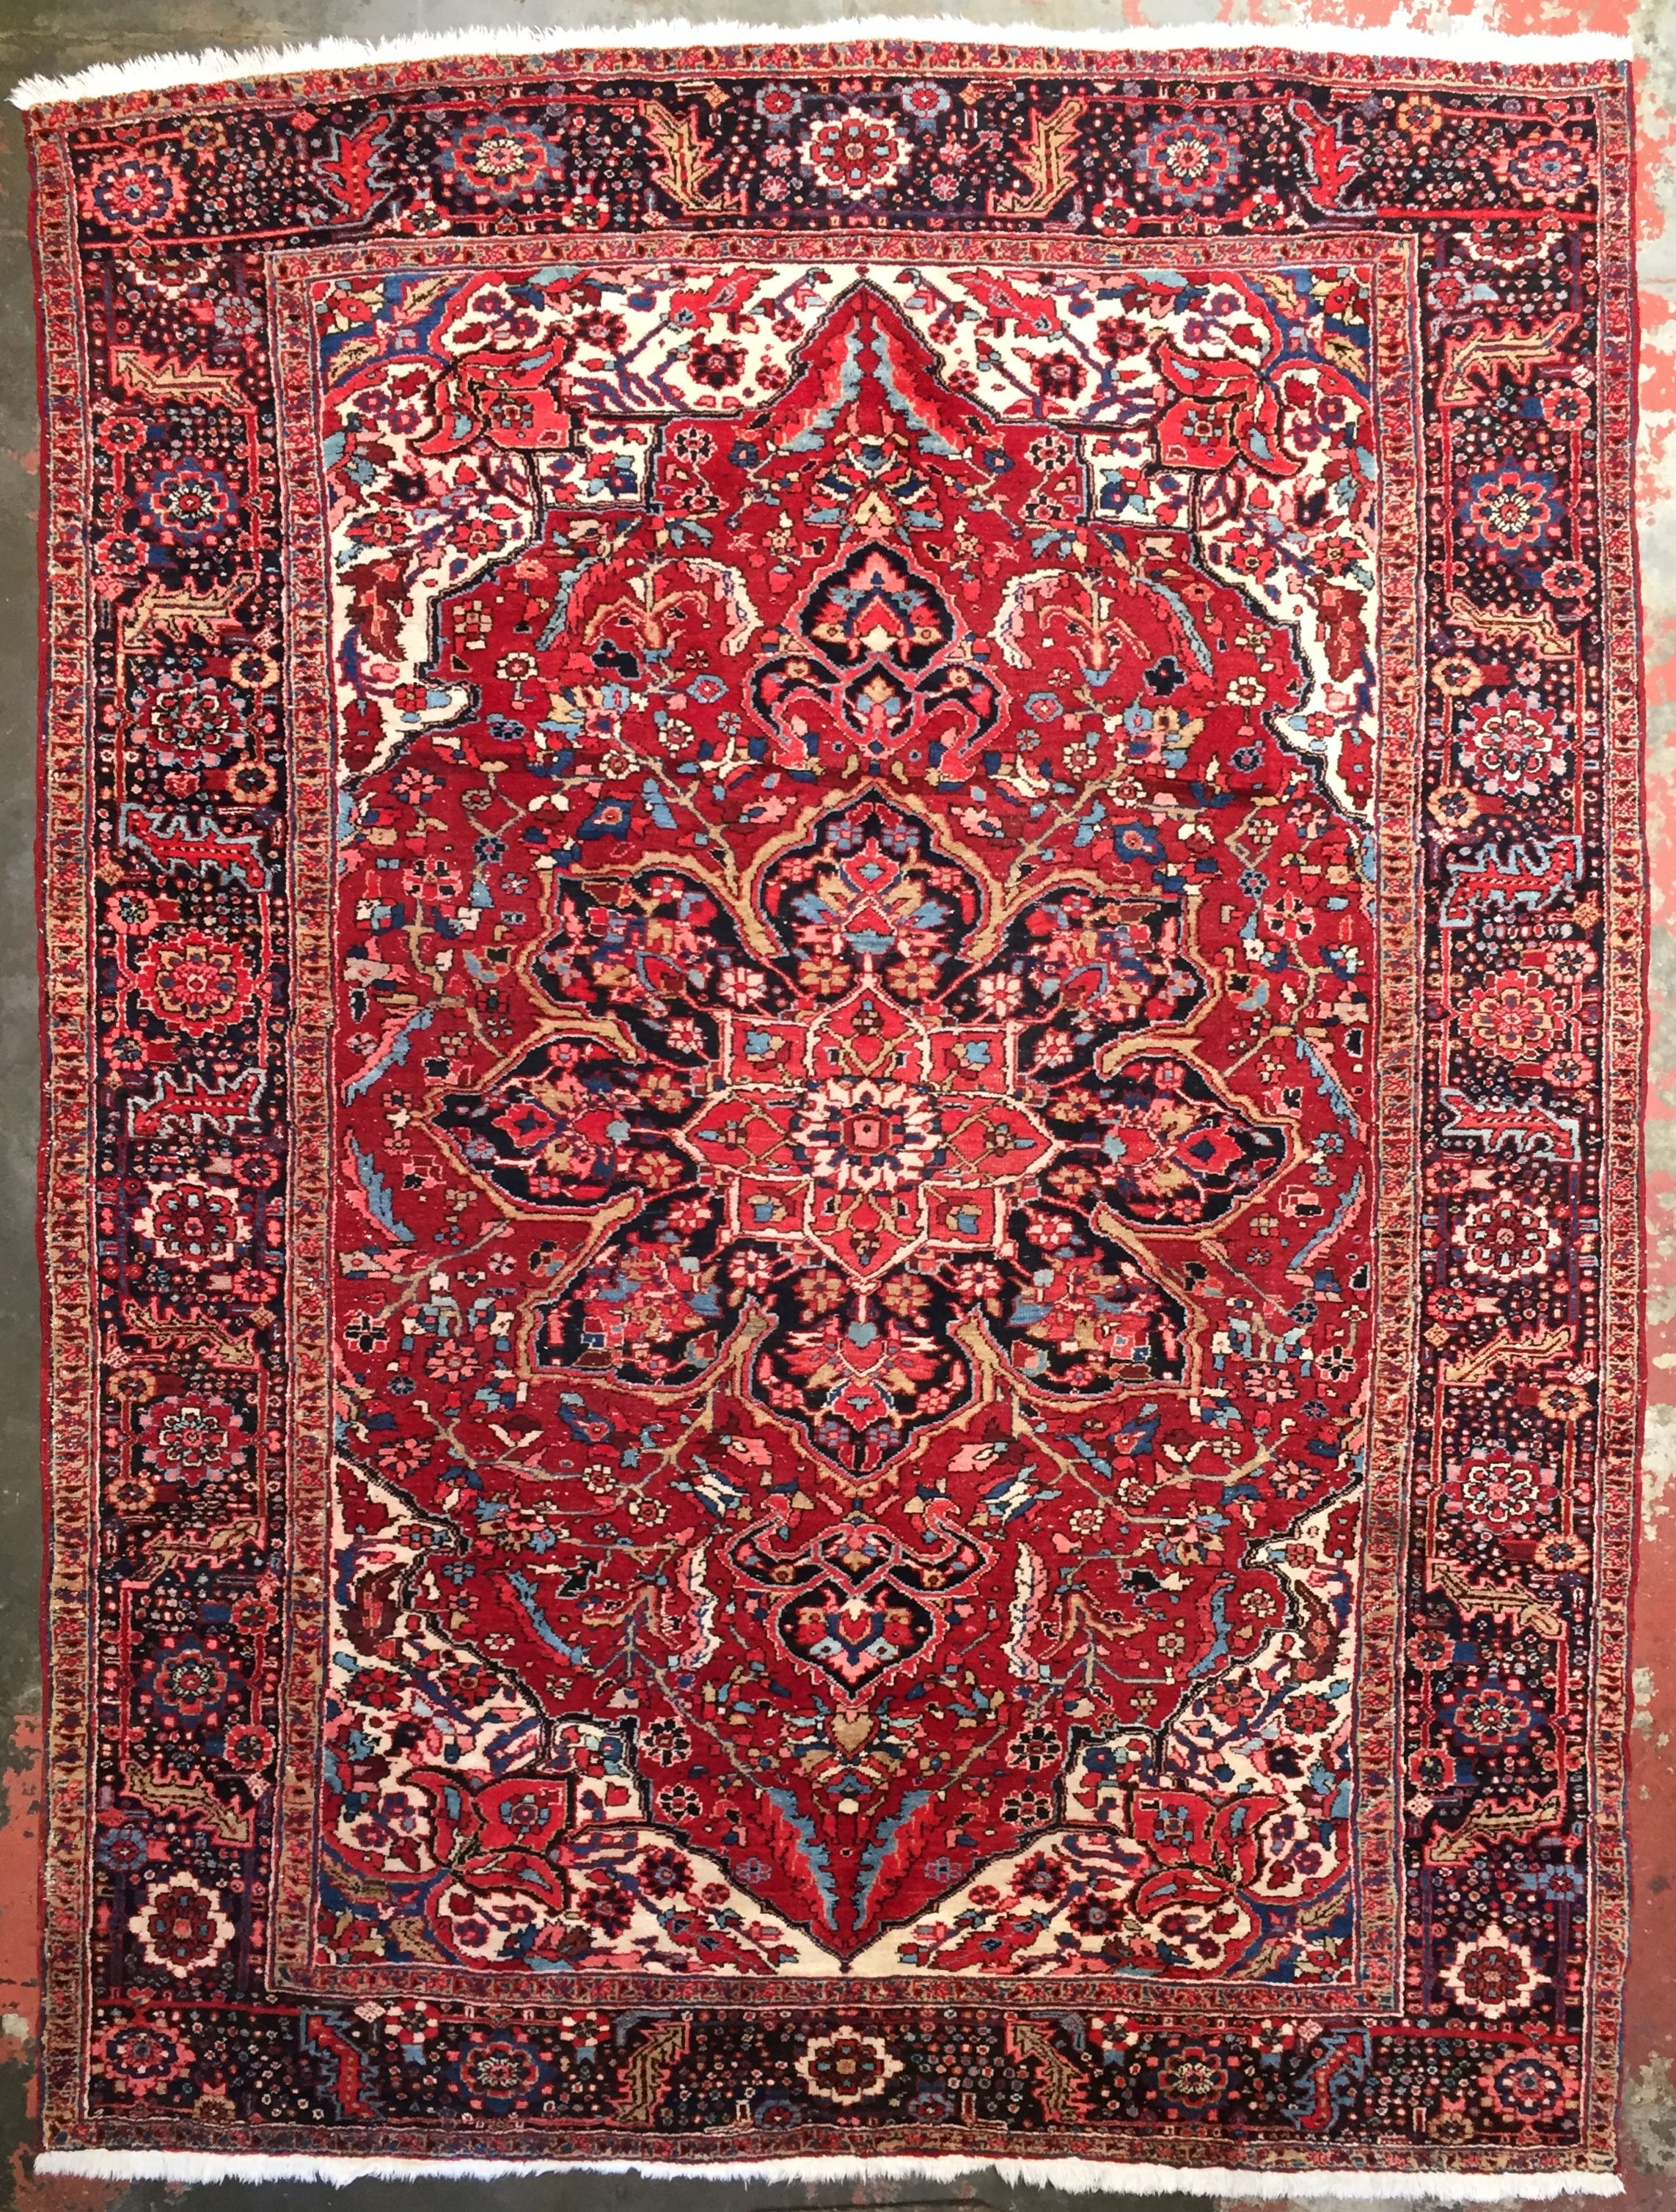 Vintage Heriz Rug 8 0 X 10 8 Colorful Rugs Red Rugs Plush Area Rugs